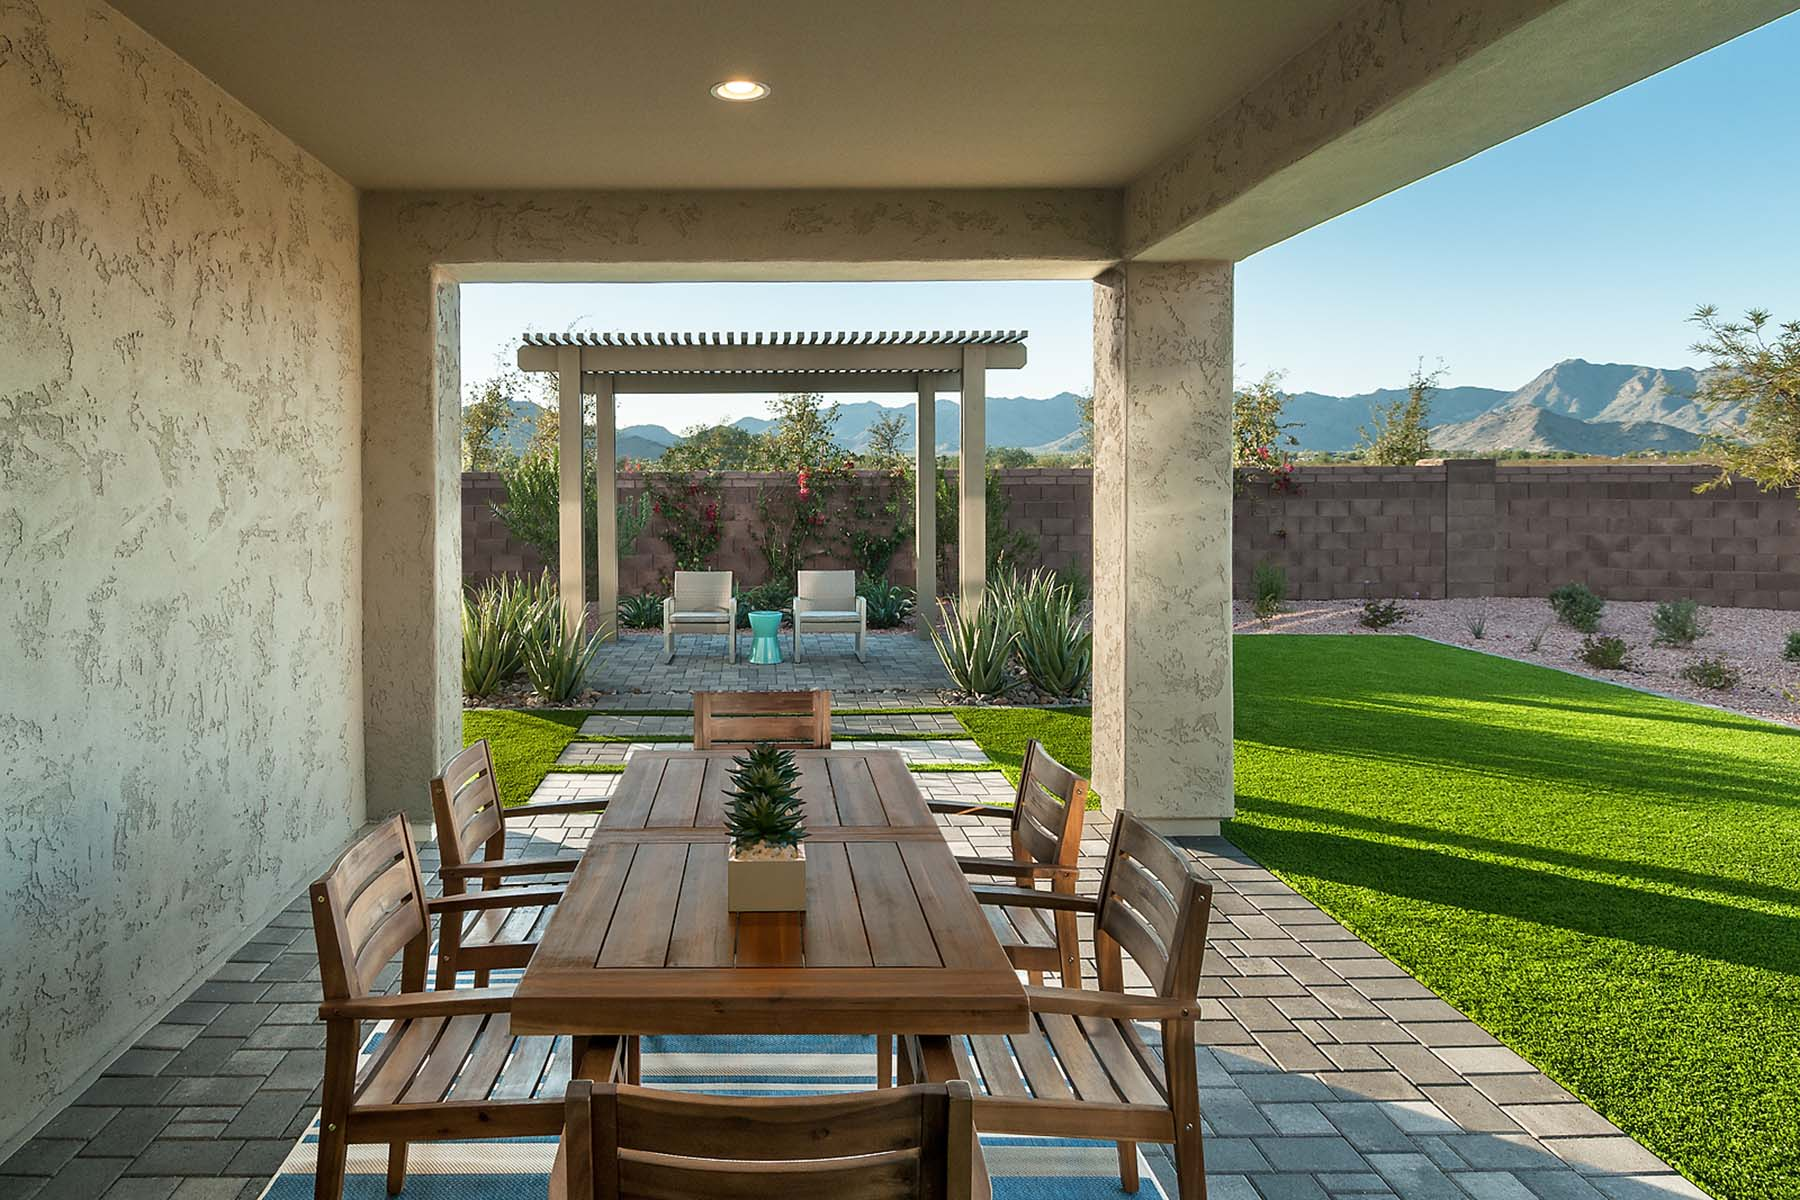 Everly Plan House Backyard at Brookside at Arroyo Seco in Buckeye Arizona by Mattamy Homes